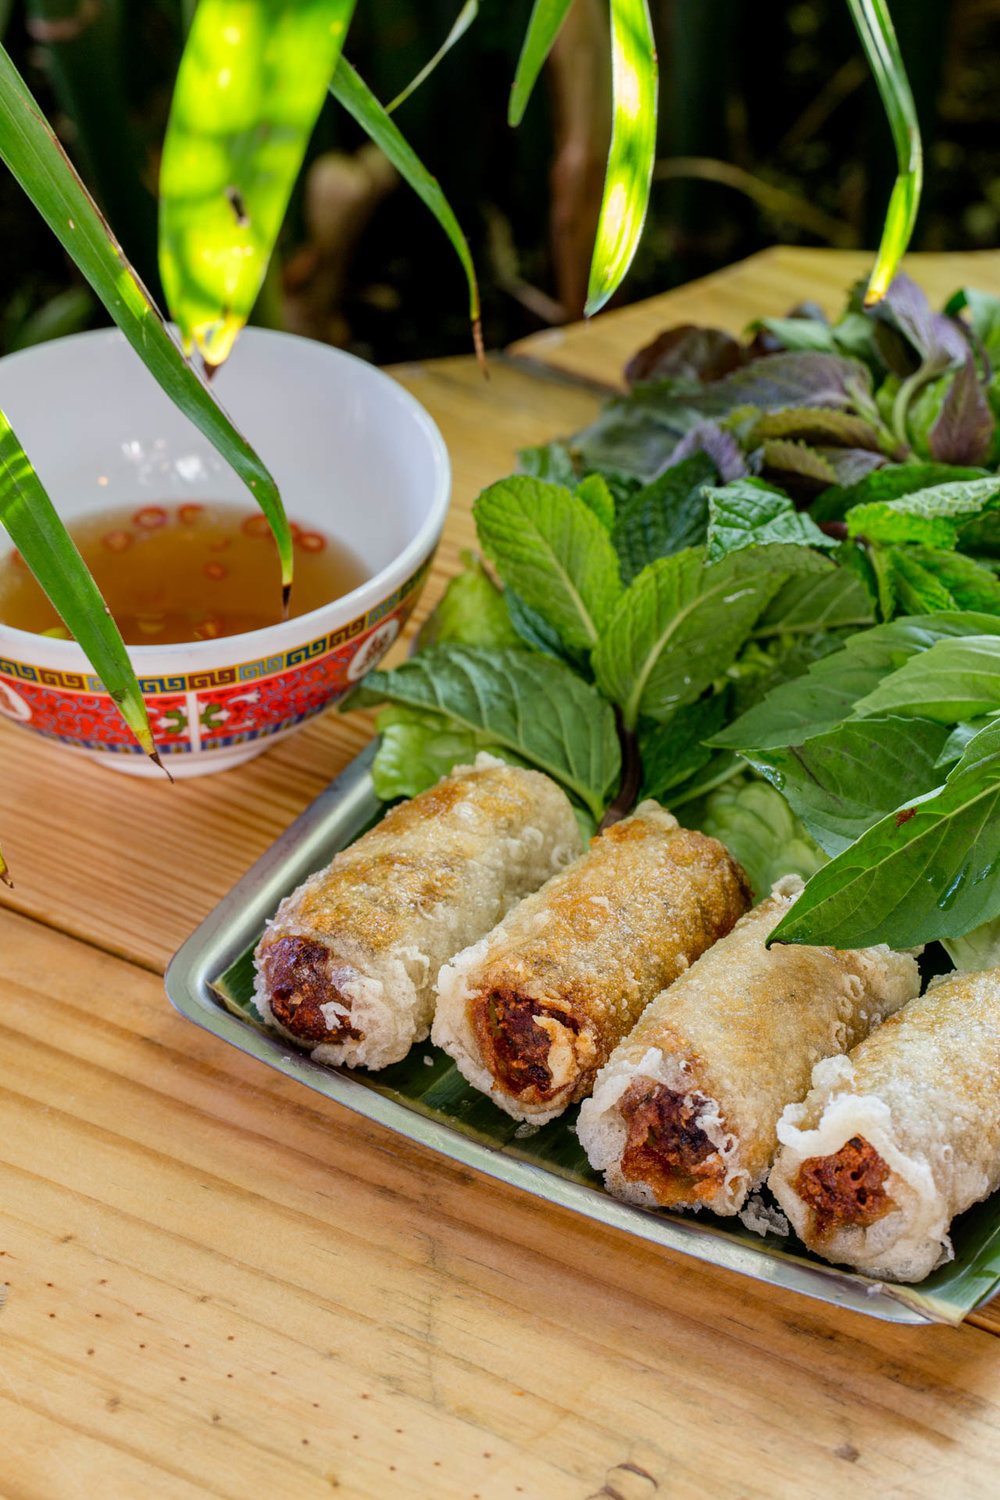 Lil' fried meat rolls by the bamboo.